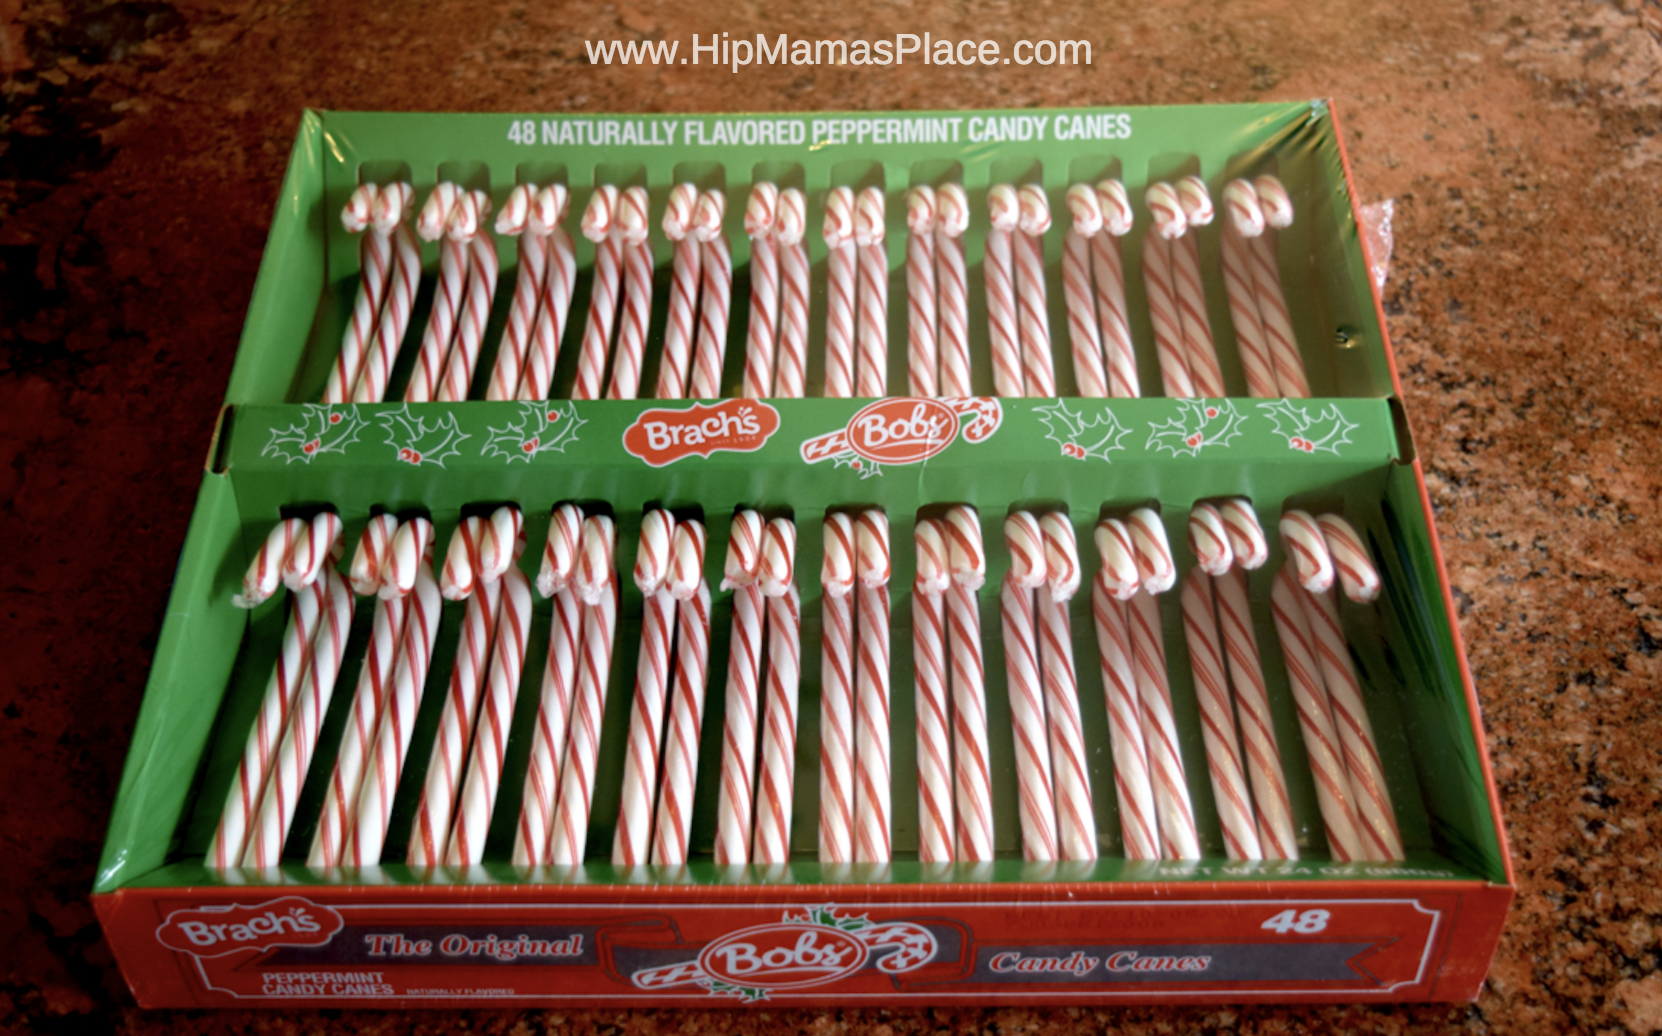 This big box of 48 ct. Bob's Candy Canes is only $4.99 at BJ's Wholesale Club!